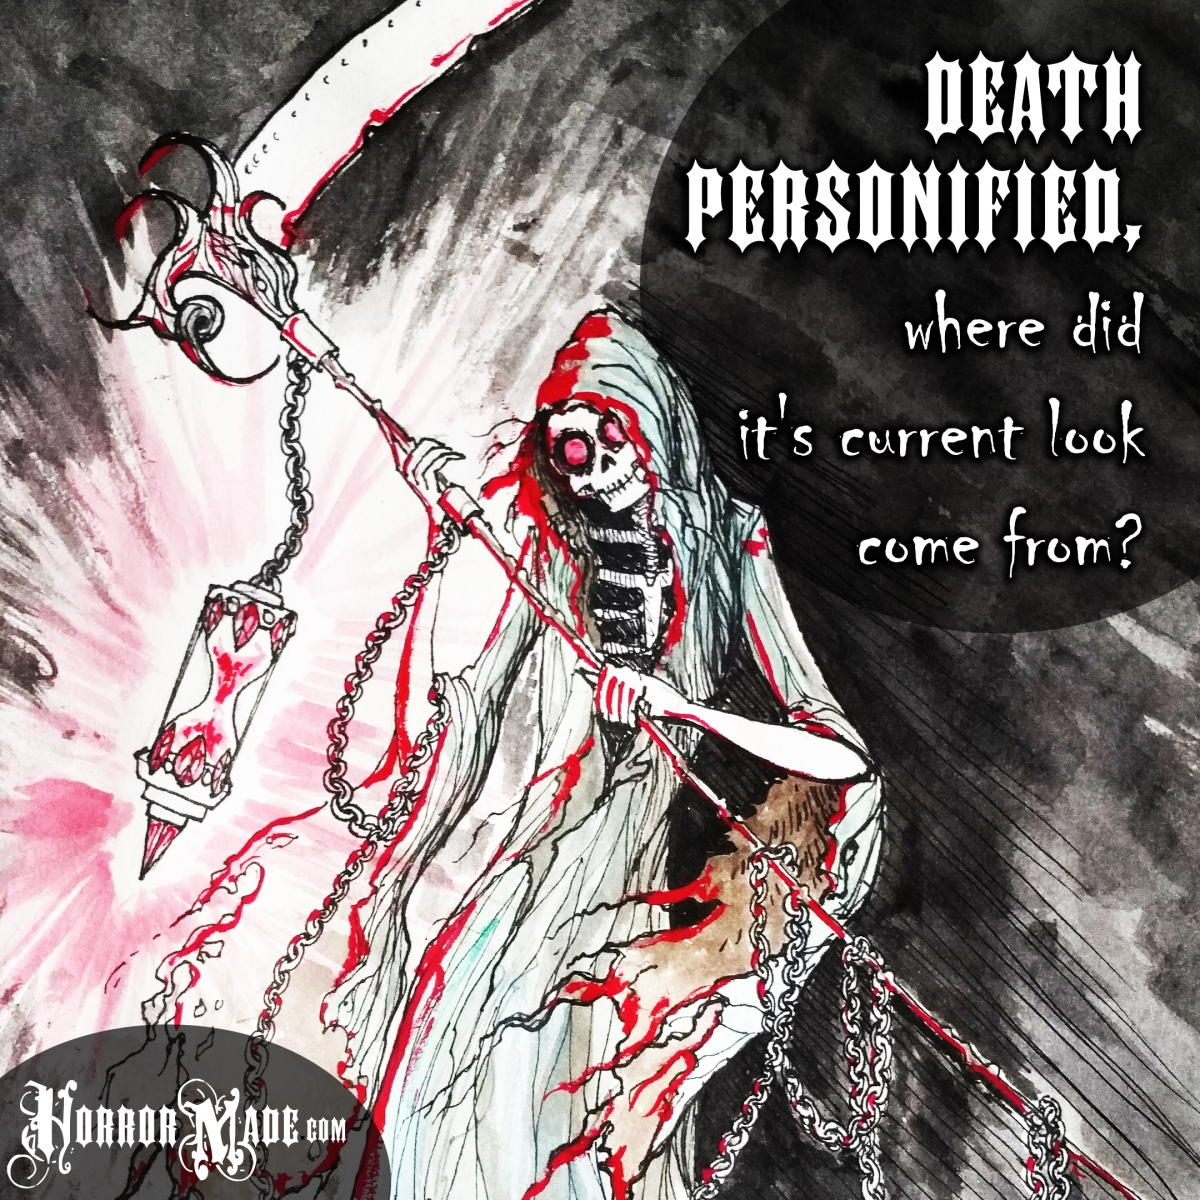 Death personified, where did it's current look come from?